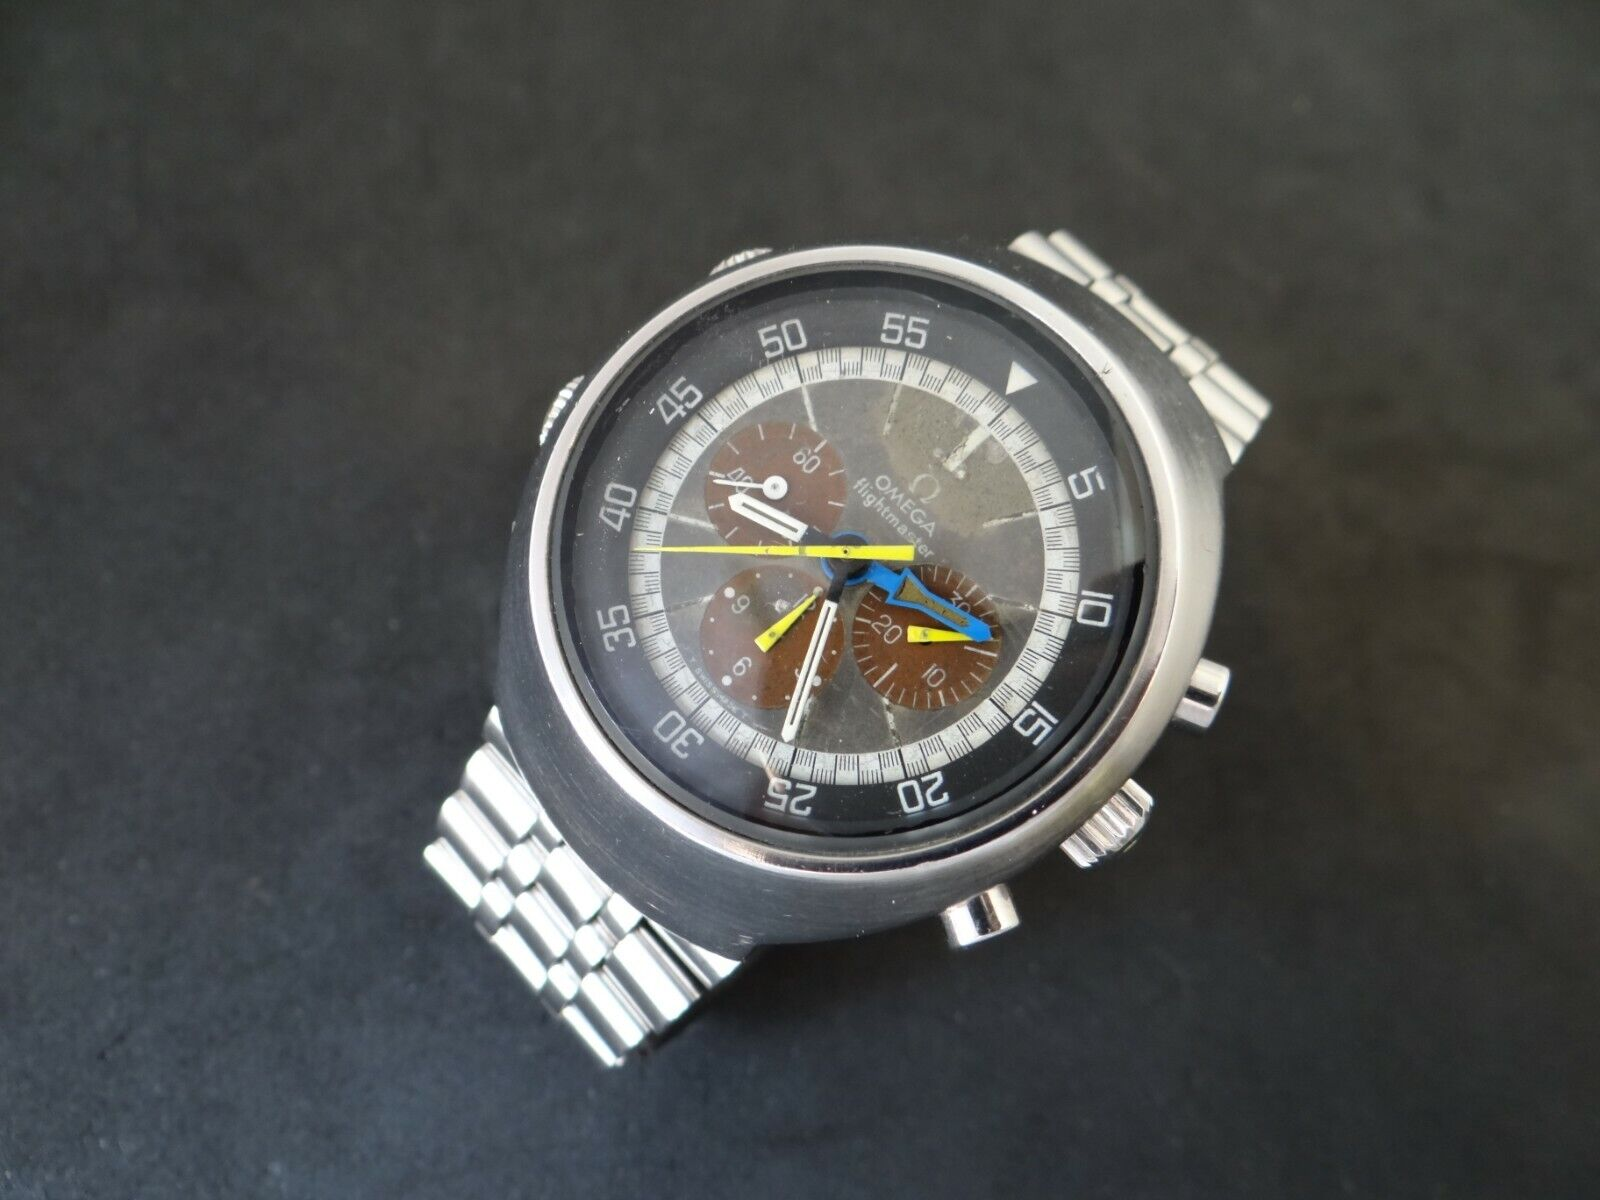 VINTAGE OMEGA FLIGHTMASTER 911 CHRONOGRAPH TROPICAL BROWN DIAL REF 145.026 - watch picture 1